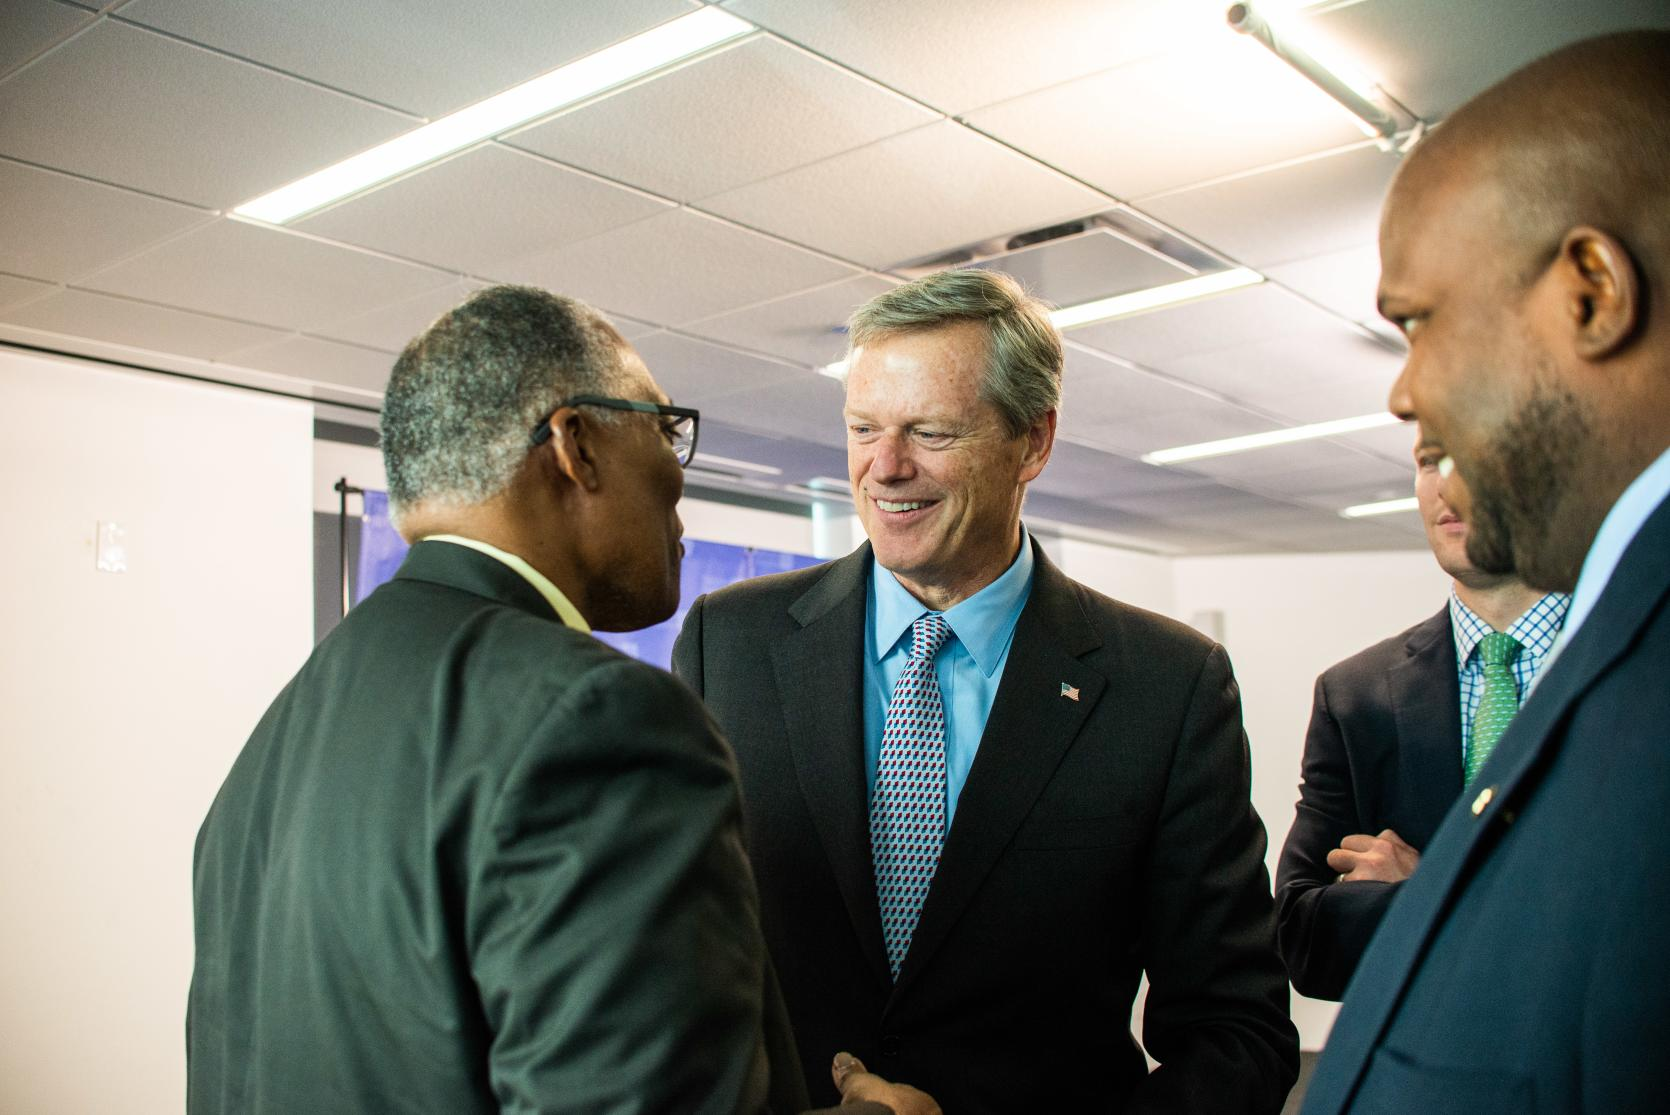 Governor Baker at the release of Black Advisory Commission's first priorities and recommendations.